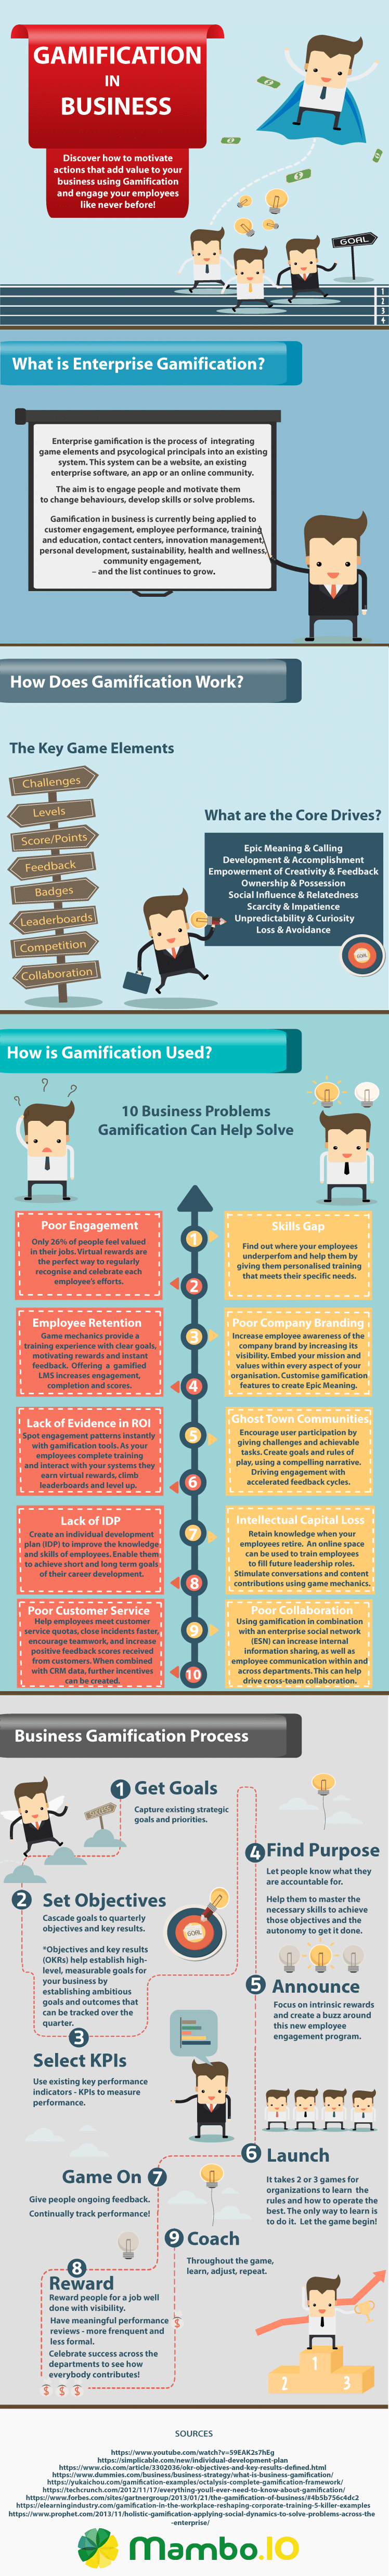 gamification_in_business_infographic-plaza